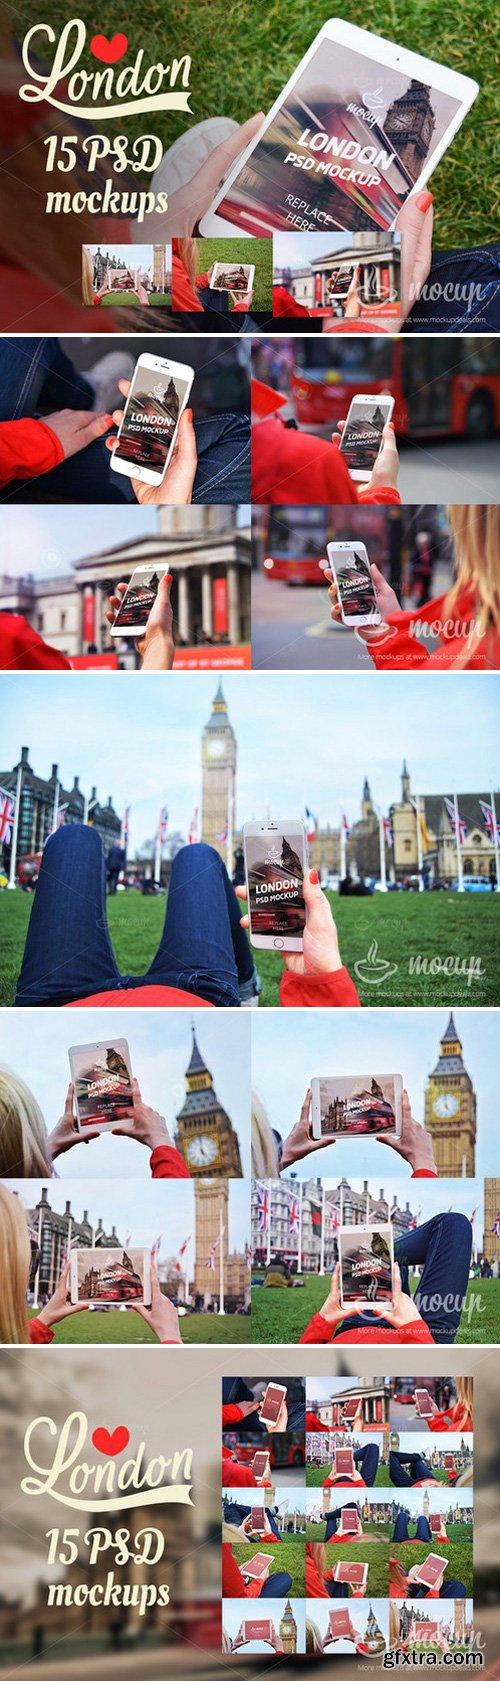 CM - 15 PSD Mockups in London 262183